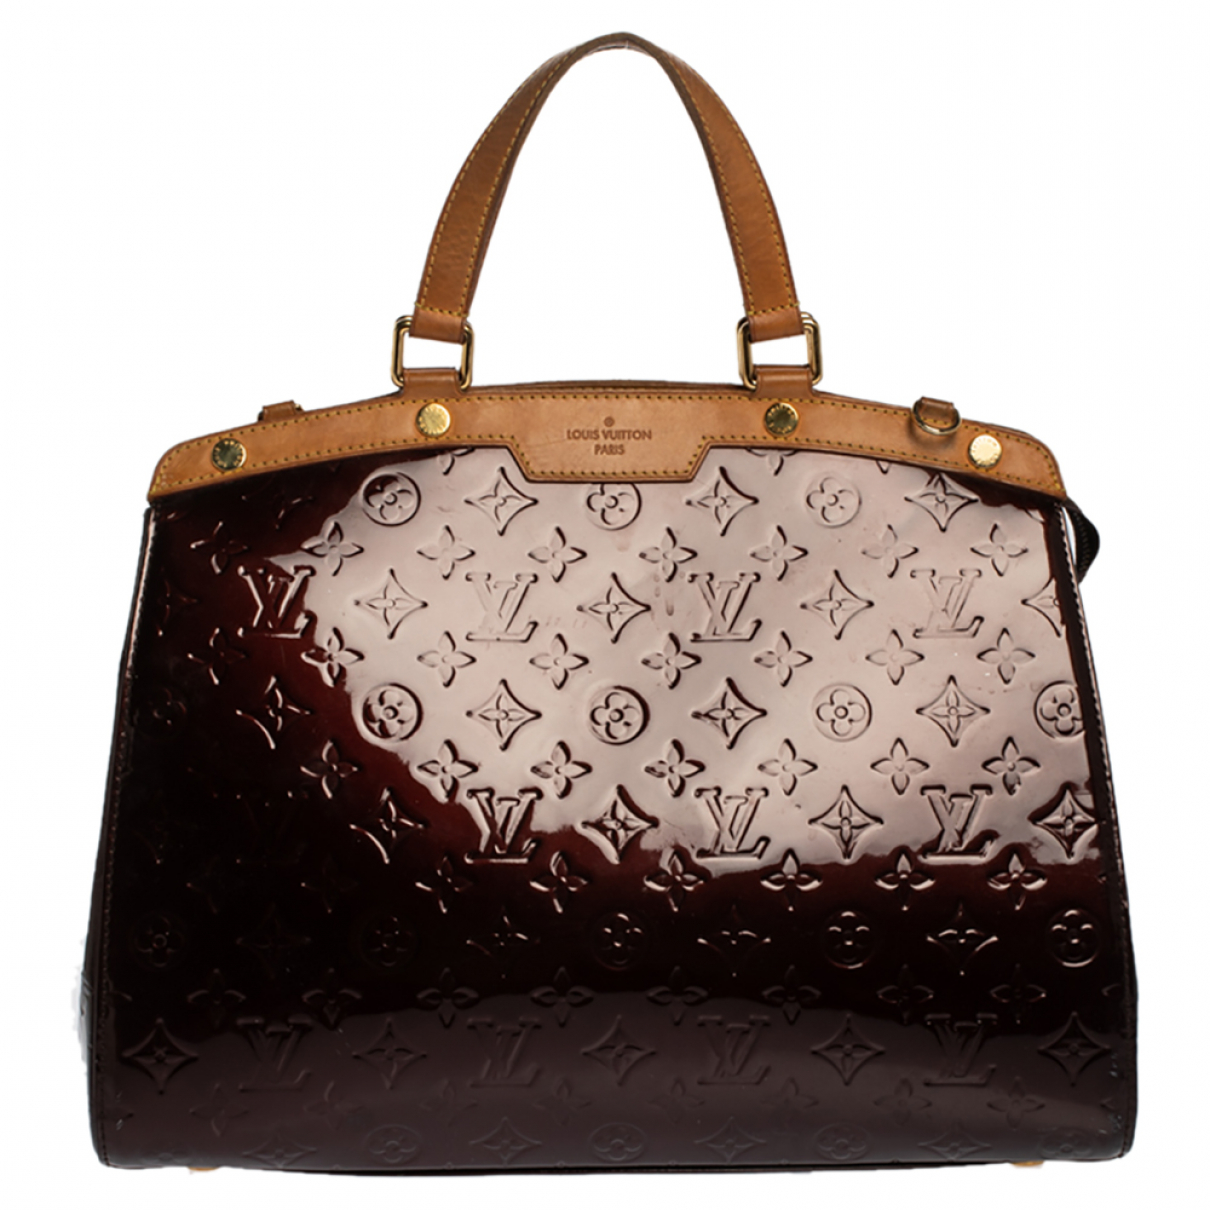 Cartera Brea de Charol Louis Vuitton